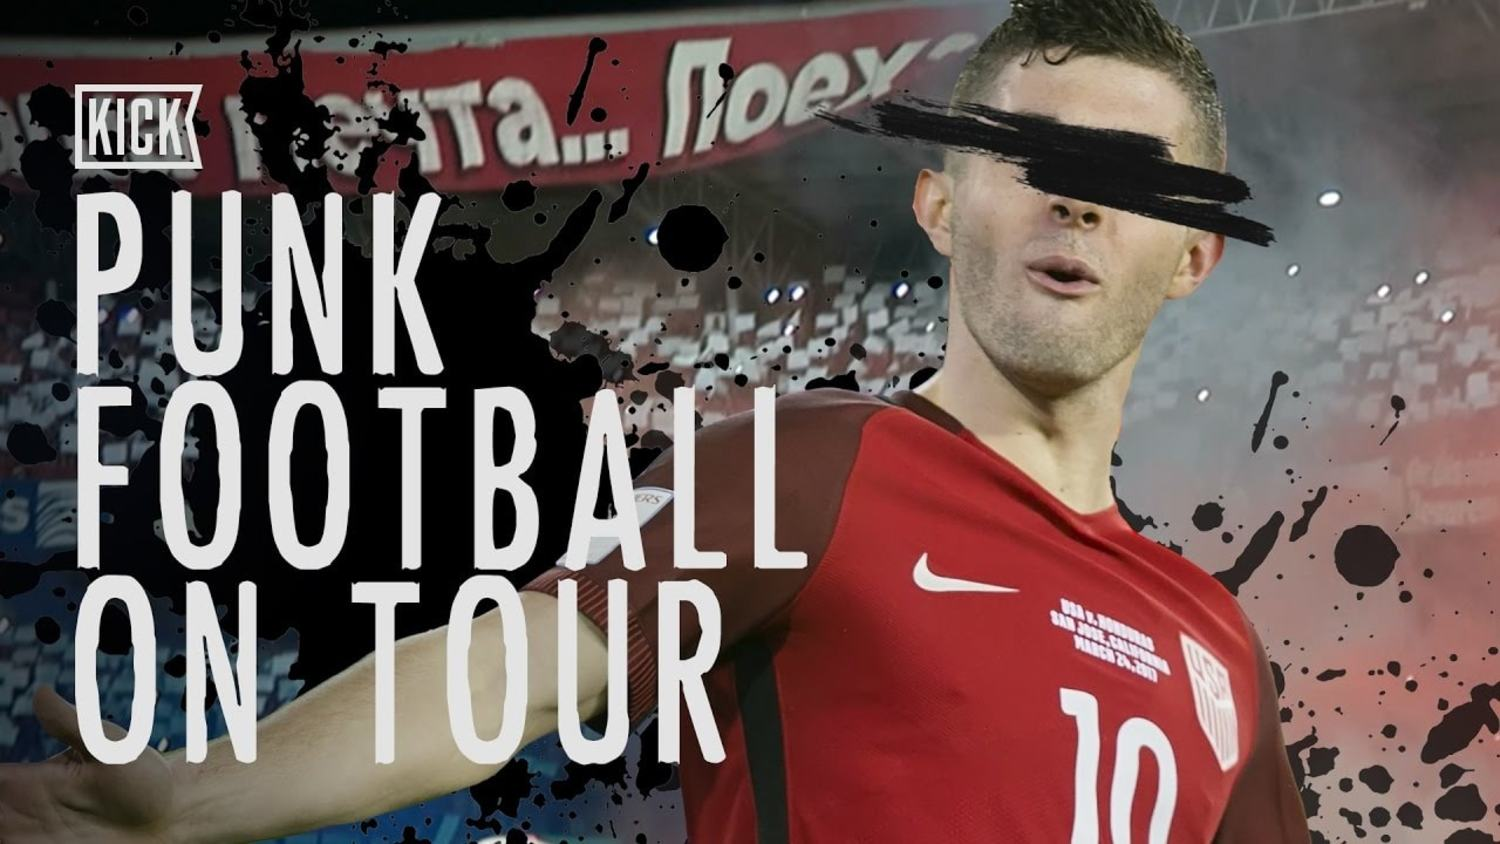 Panama vs USA- Punk Football On Tour: Volume 1